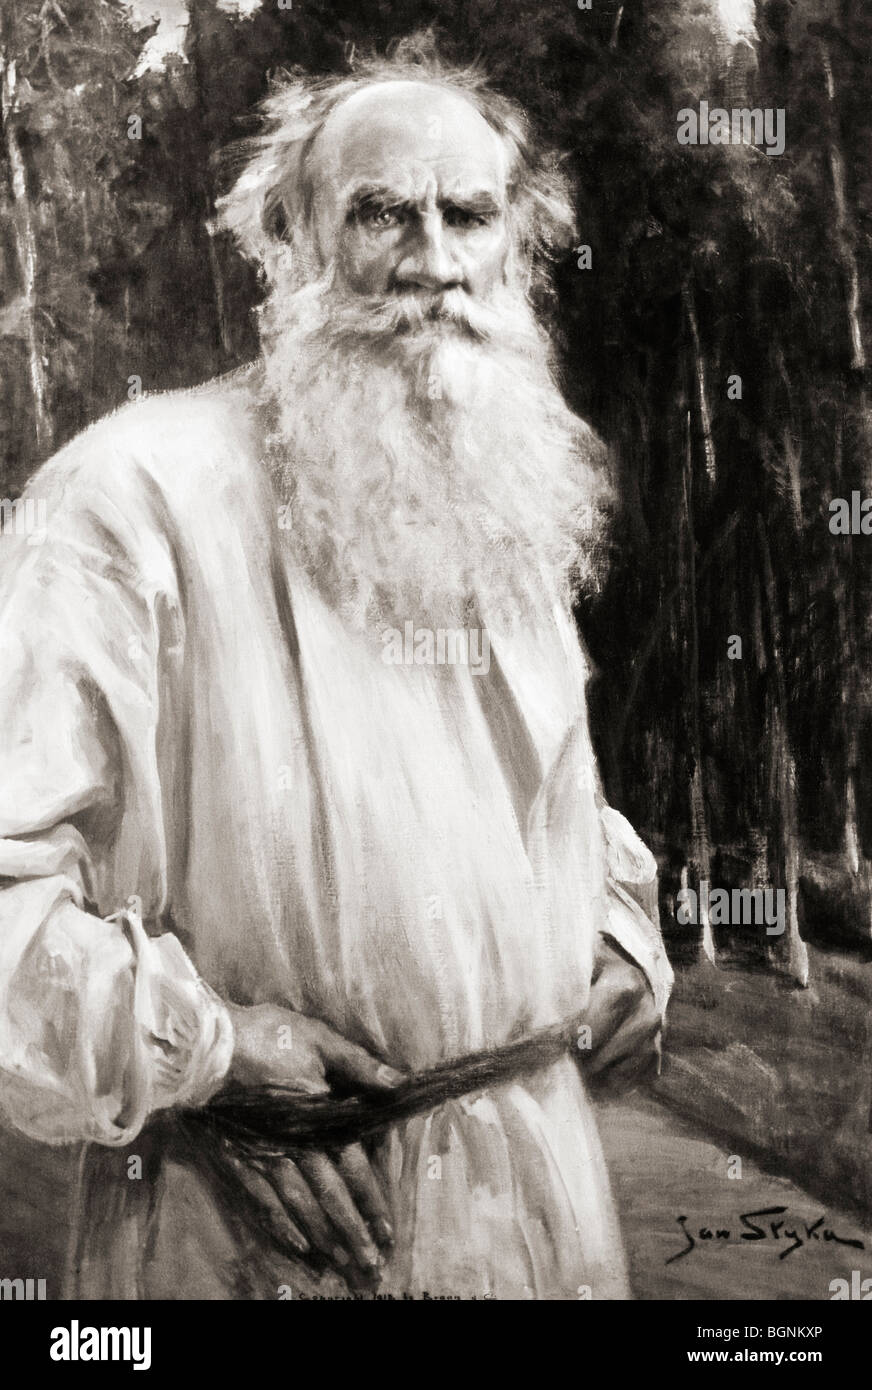 Count Leo Tolstoy 1828 to 1910. Russian novelist. - Stock Image